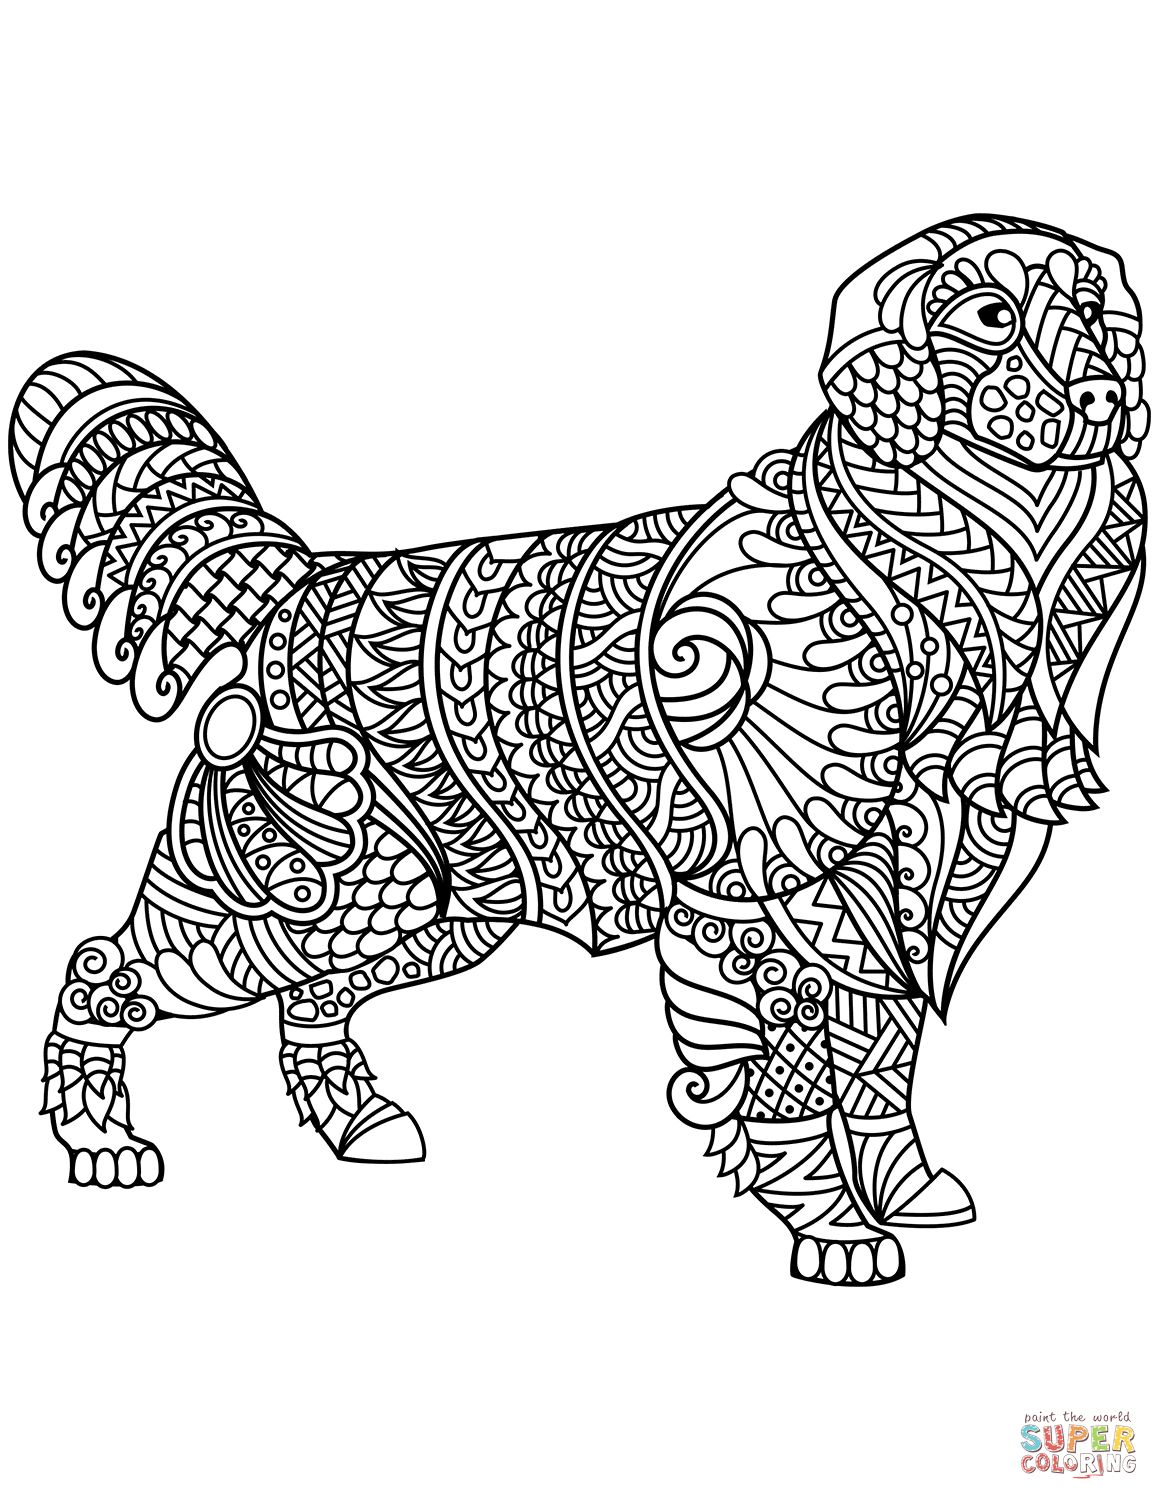 Golden Retriever Coloring Page Golden Retriever Zentangle Coloring Page Free Printable Coloring Pages Albanysinsanity Com Dog Coloring Page Dog Coloring Book Animal Coloring Pages